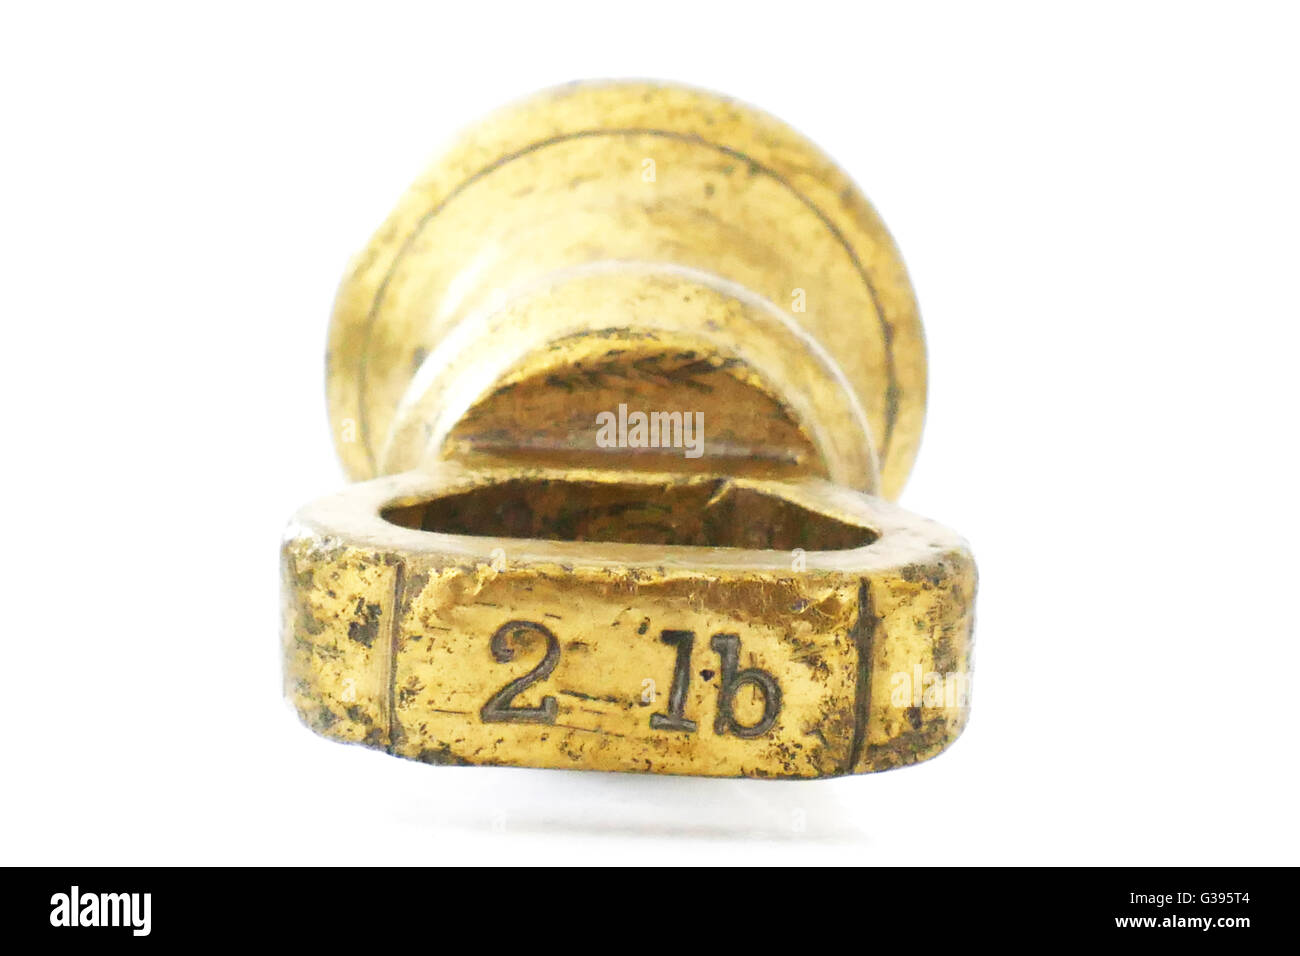 2 lb old fashioned Imperial brass weight which was used on traditional scales, pre metric - Stock Image